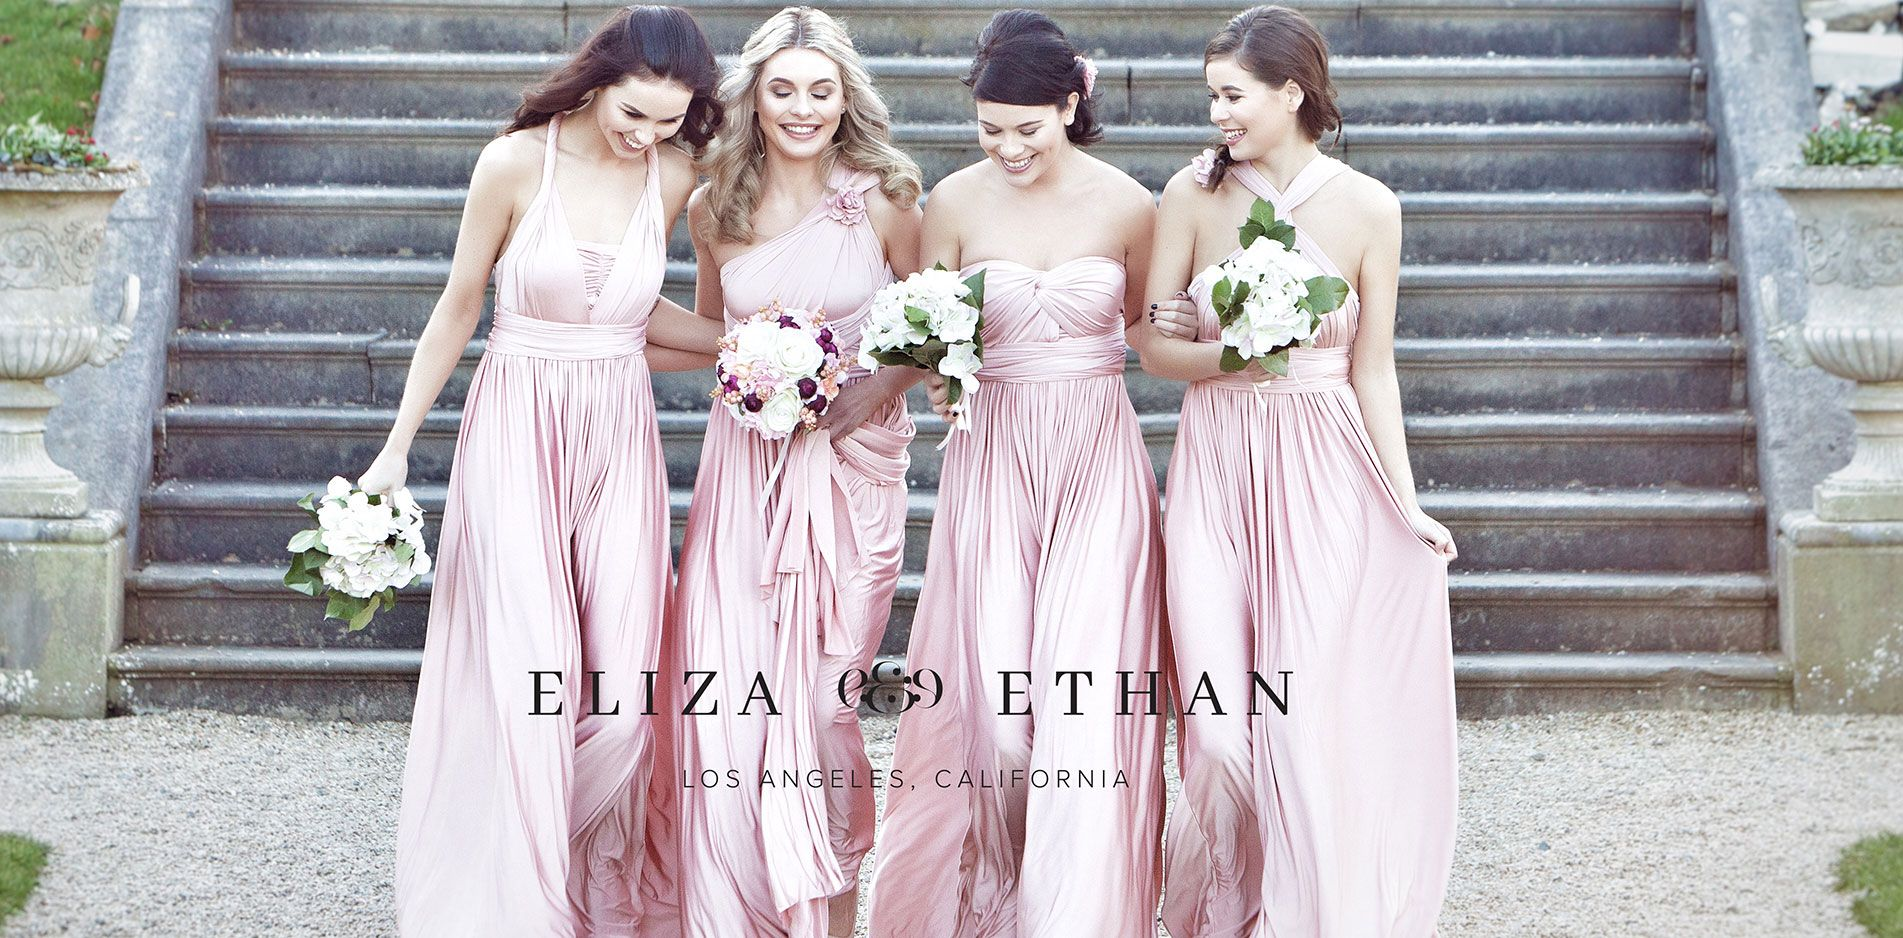 Eliza and ethan was founded in 2007 and offers a the unique multi eliza and ethan was founded in 2007 and offers a the unique multi wrap dress ombrellifo Choice Image